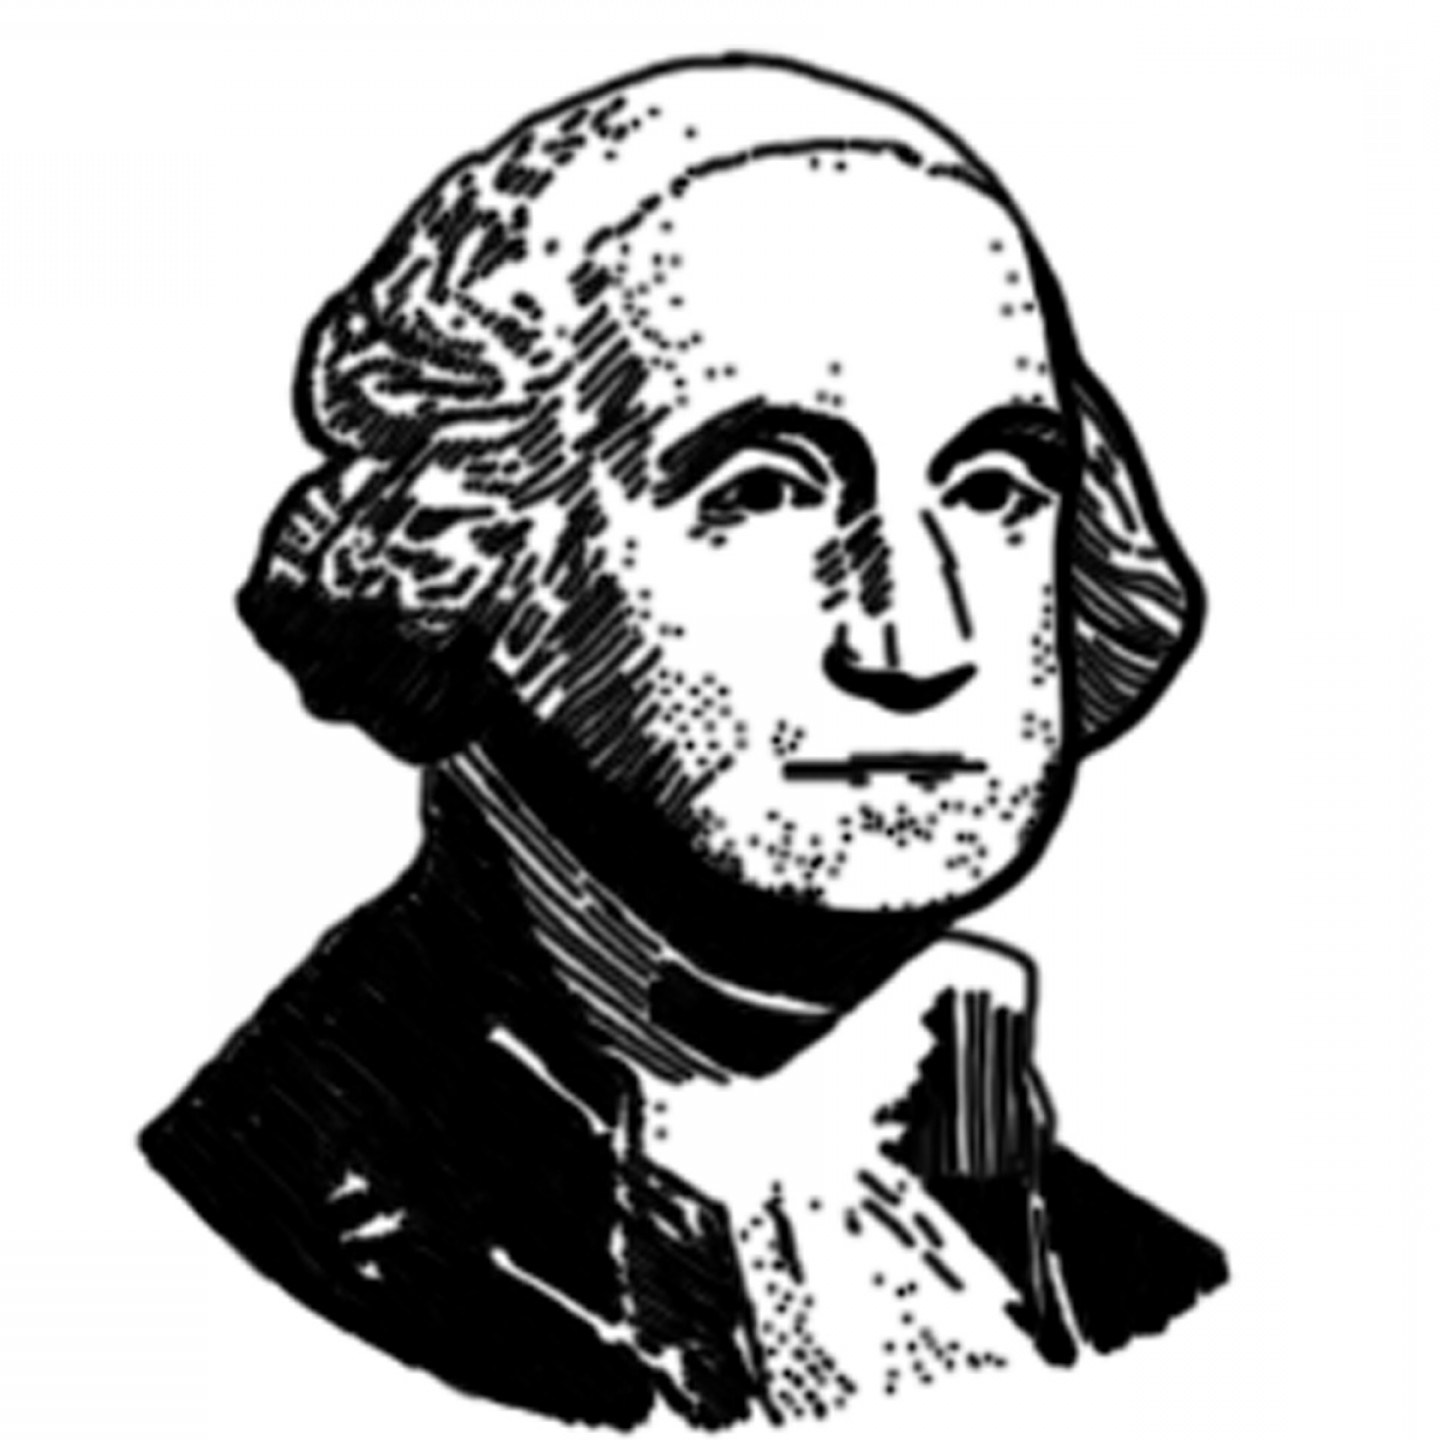 1440x1440 George Washington Clipart Black And White Clipart Portal